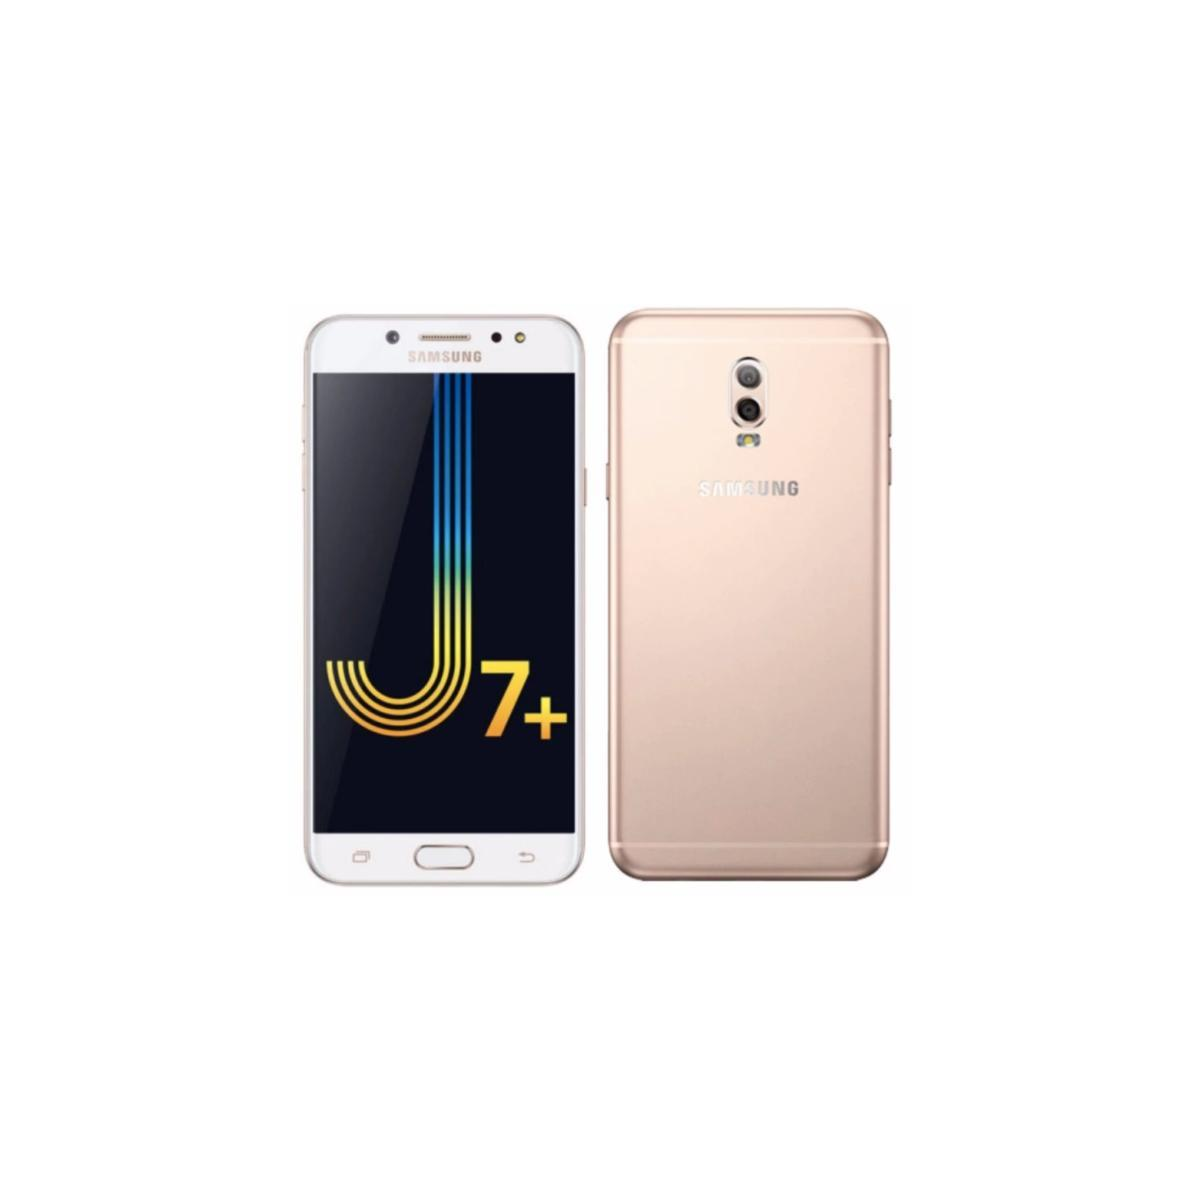 Android Nougat 71 Samsung Galaxy J7 Plus Smartphone